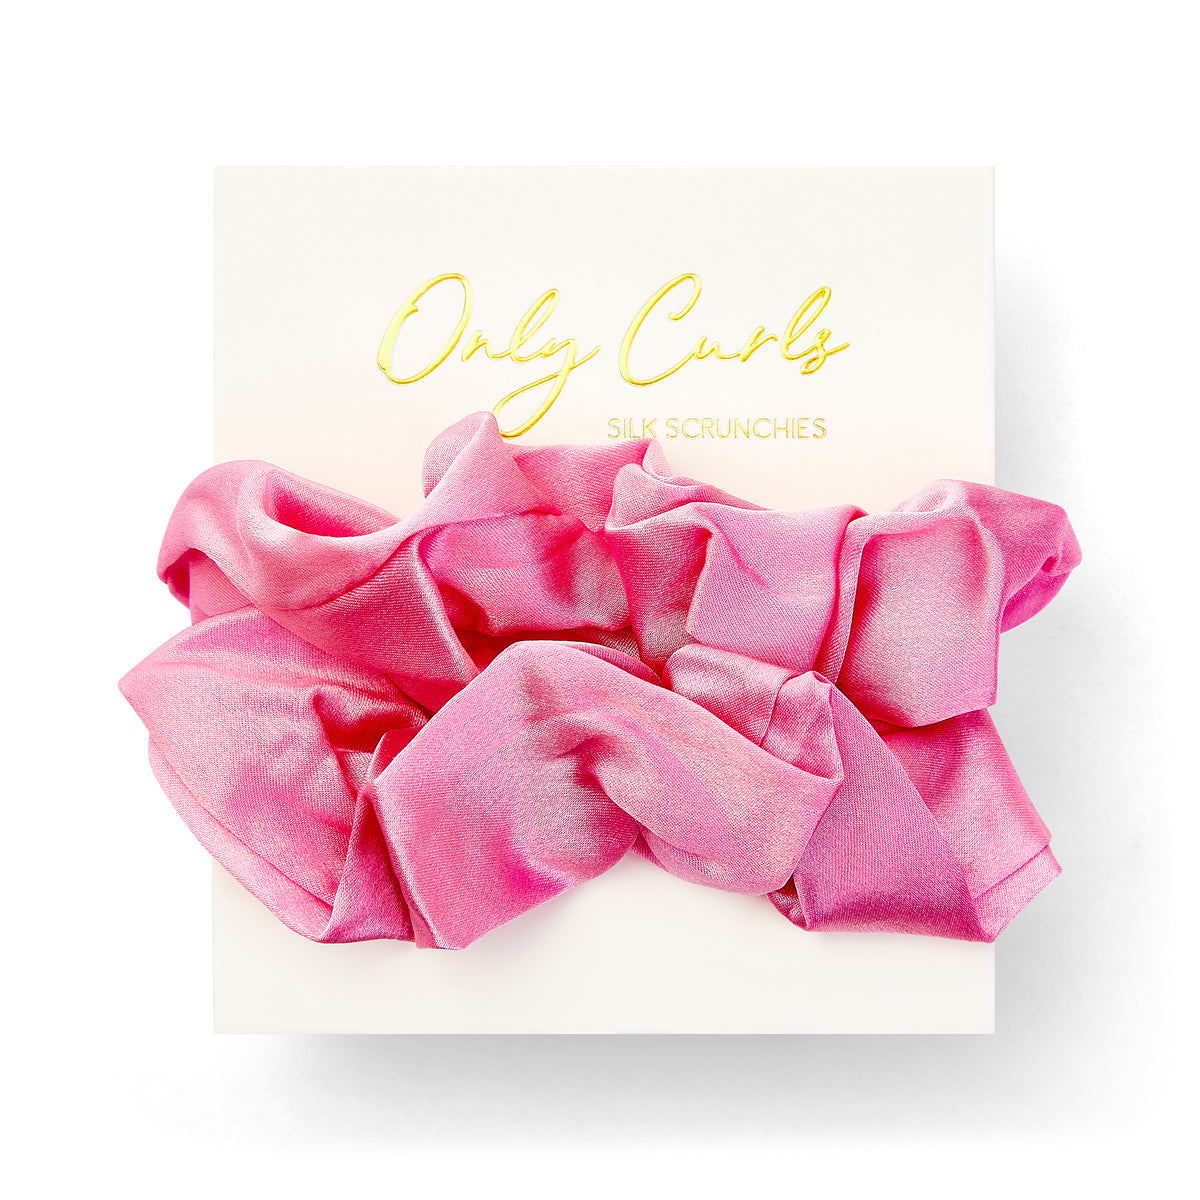 Only Curls Silk Scrunchies Hot Pink - Only Curls